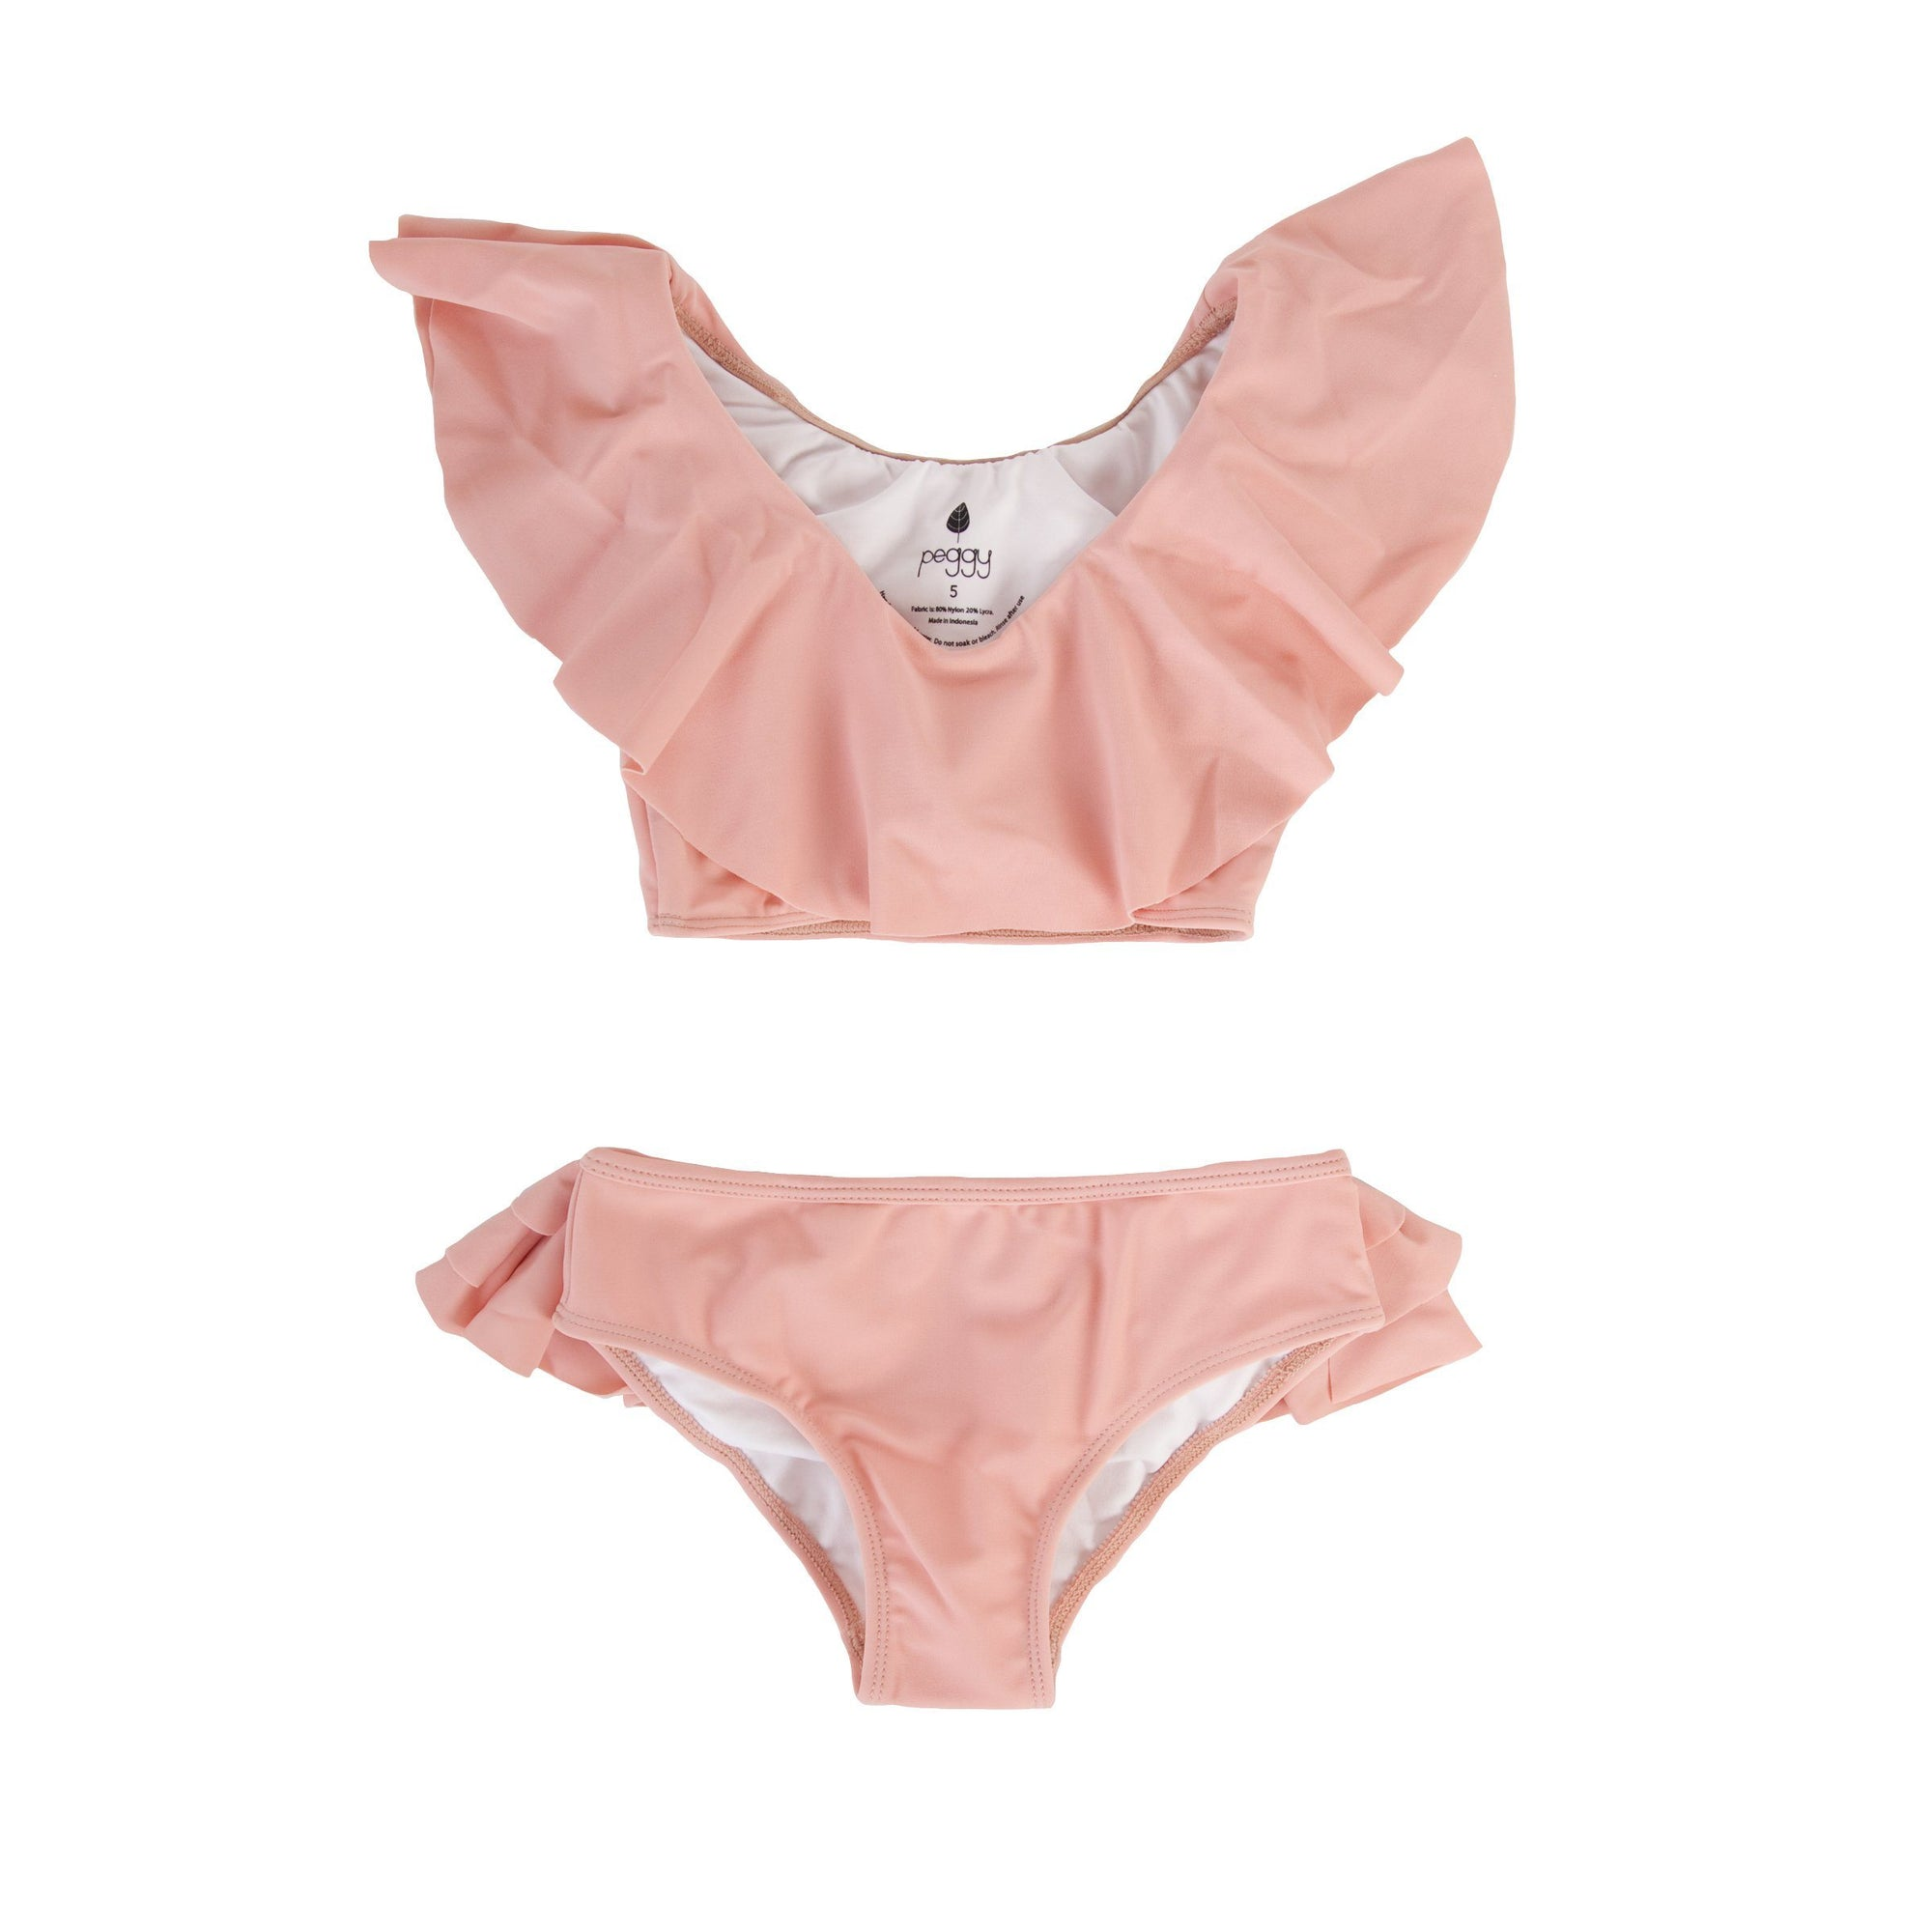 Sweeney Two Piece Swimsuit - Blush Pink